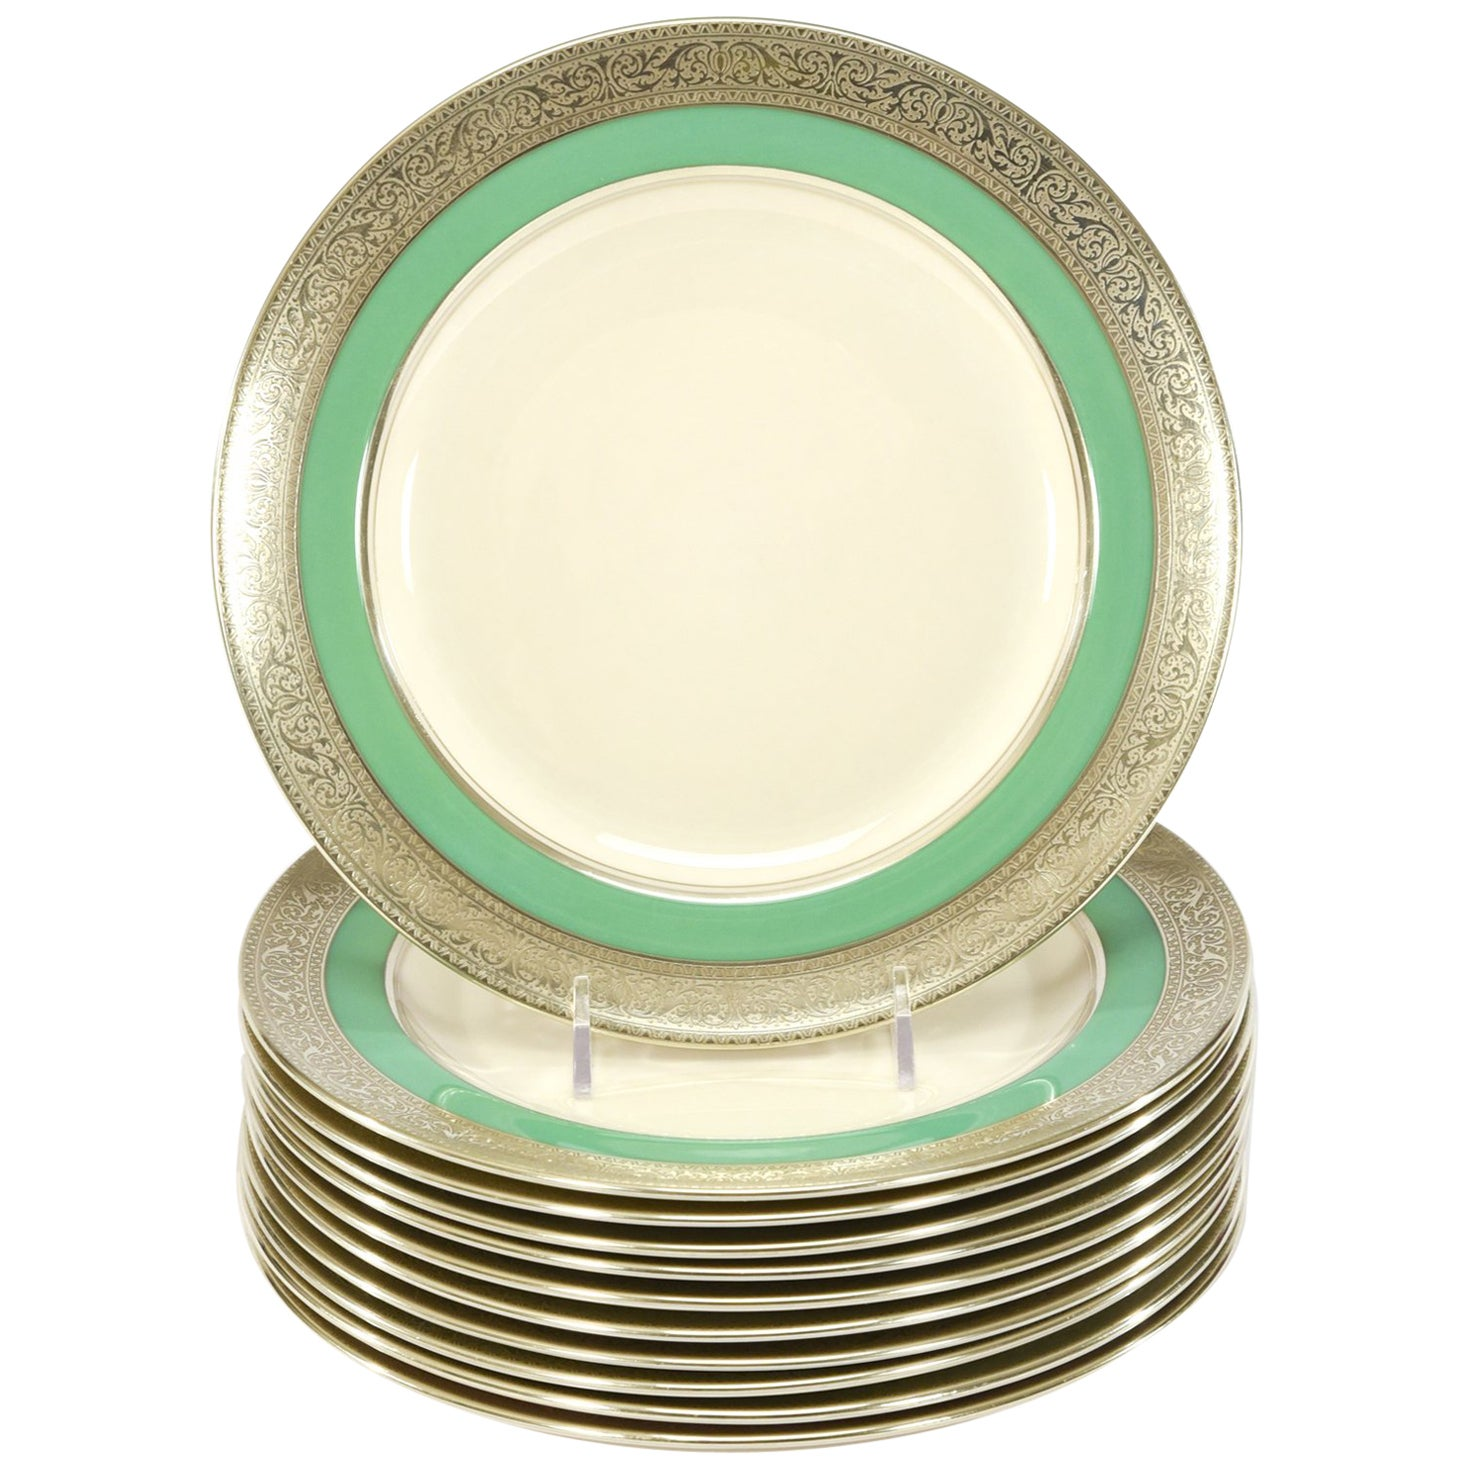 Set of 12 Lenox Green & Ivory Dessert Plates with Silver Overlay Borders, 1920s